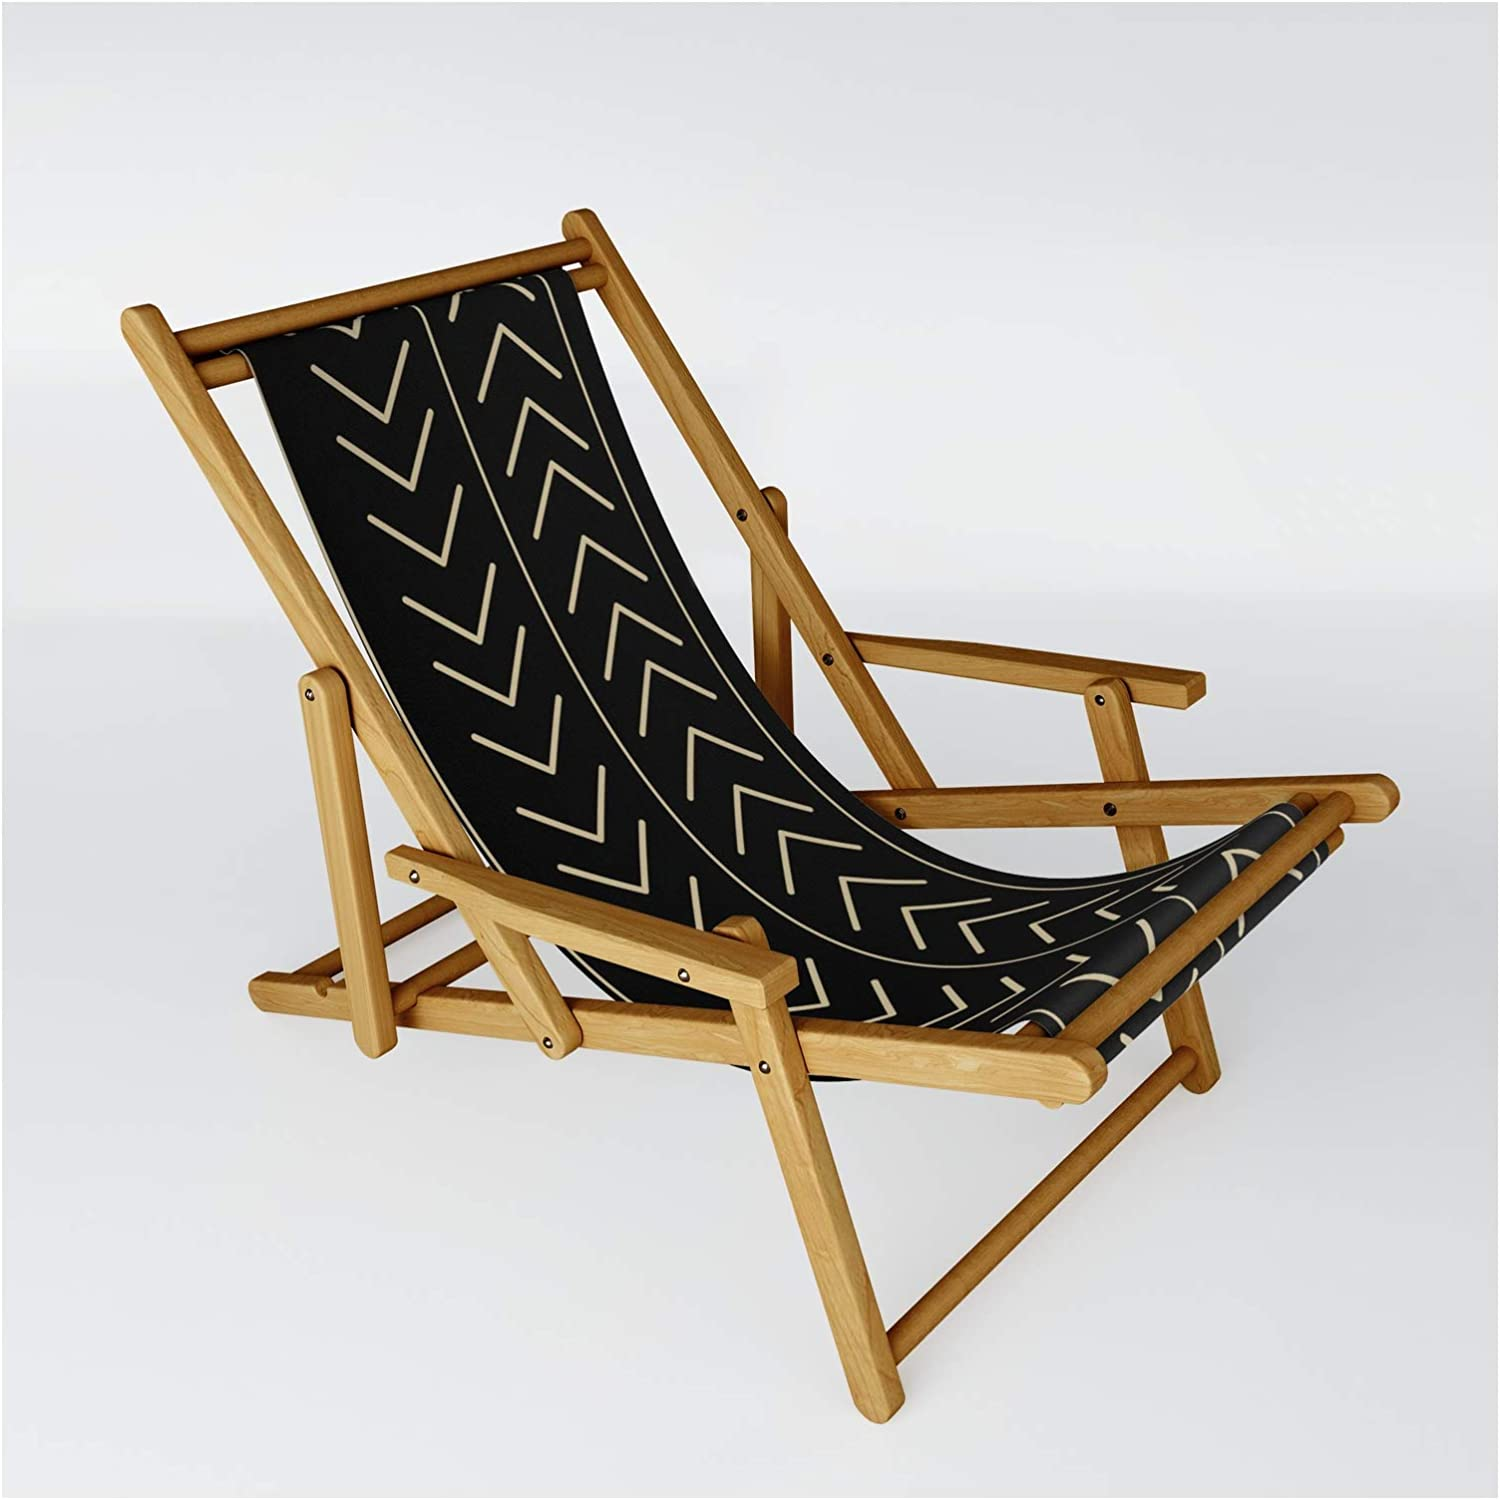 Society6 Mudcloth Black by Swati Bhatnagar excellence - One Sling Chair on Reservation